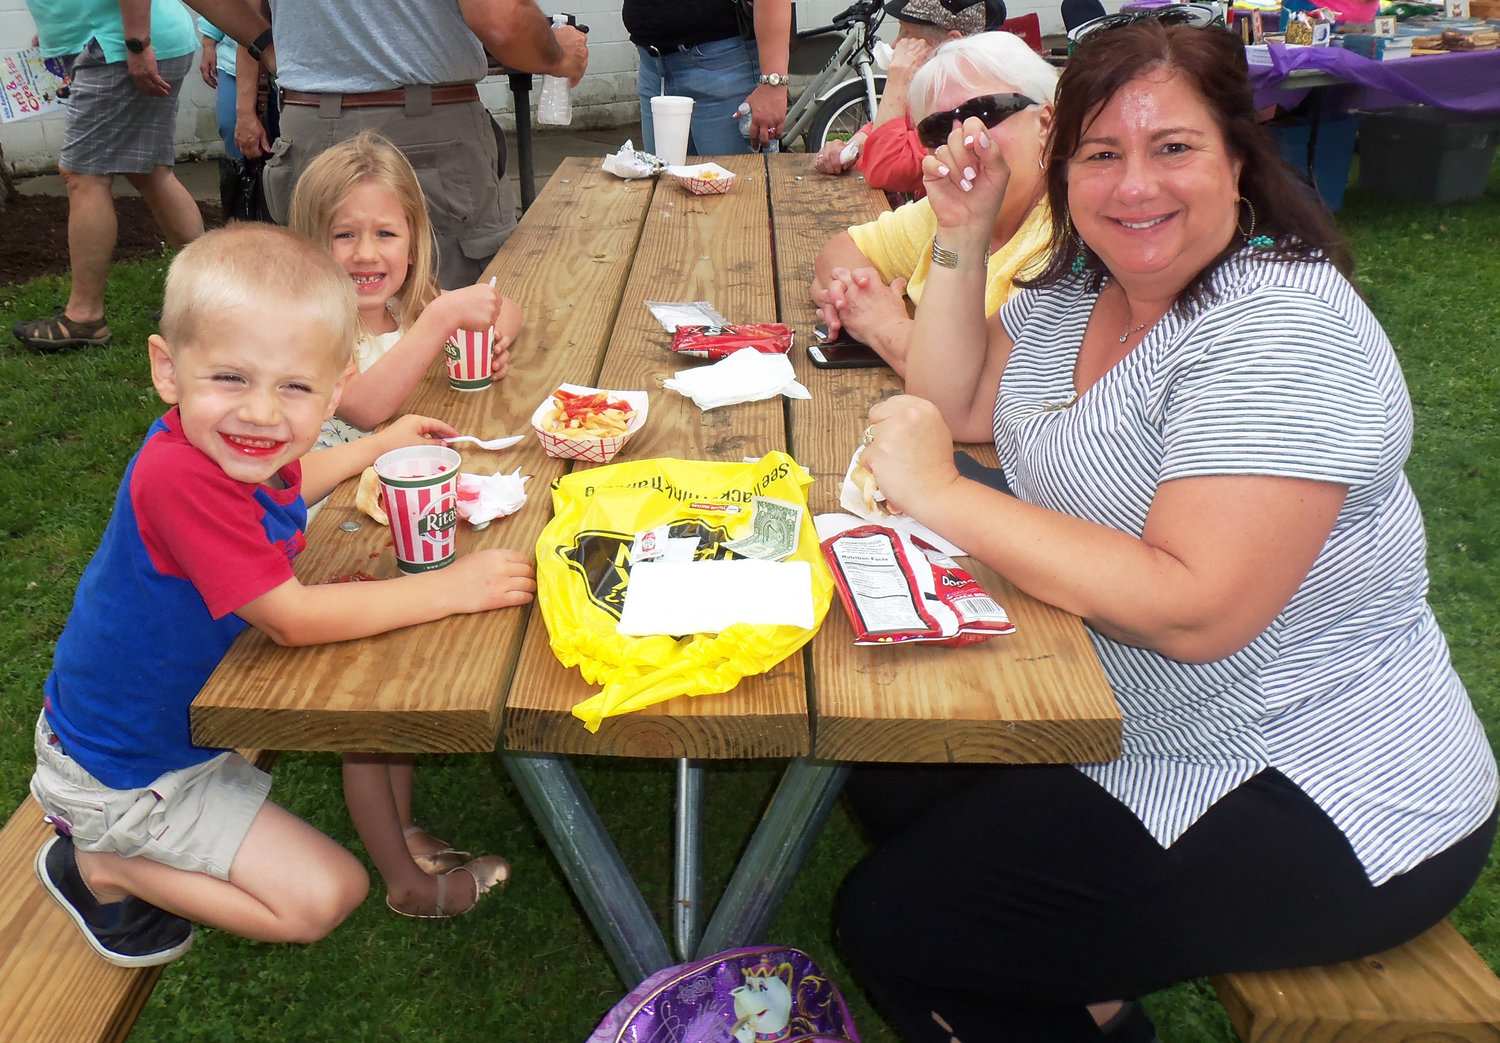 Erin Heverling of Hershey, front right, and children Mason, 3, and Olivia, 5, enjoy a picnic lunch at the Middletown Area Historical Society's Arts & Crafts Fair on June 8 with the children's grandmother, Ruth Dean of Hershey.